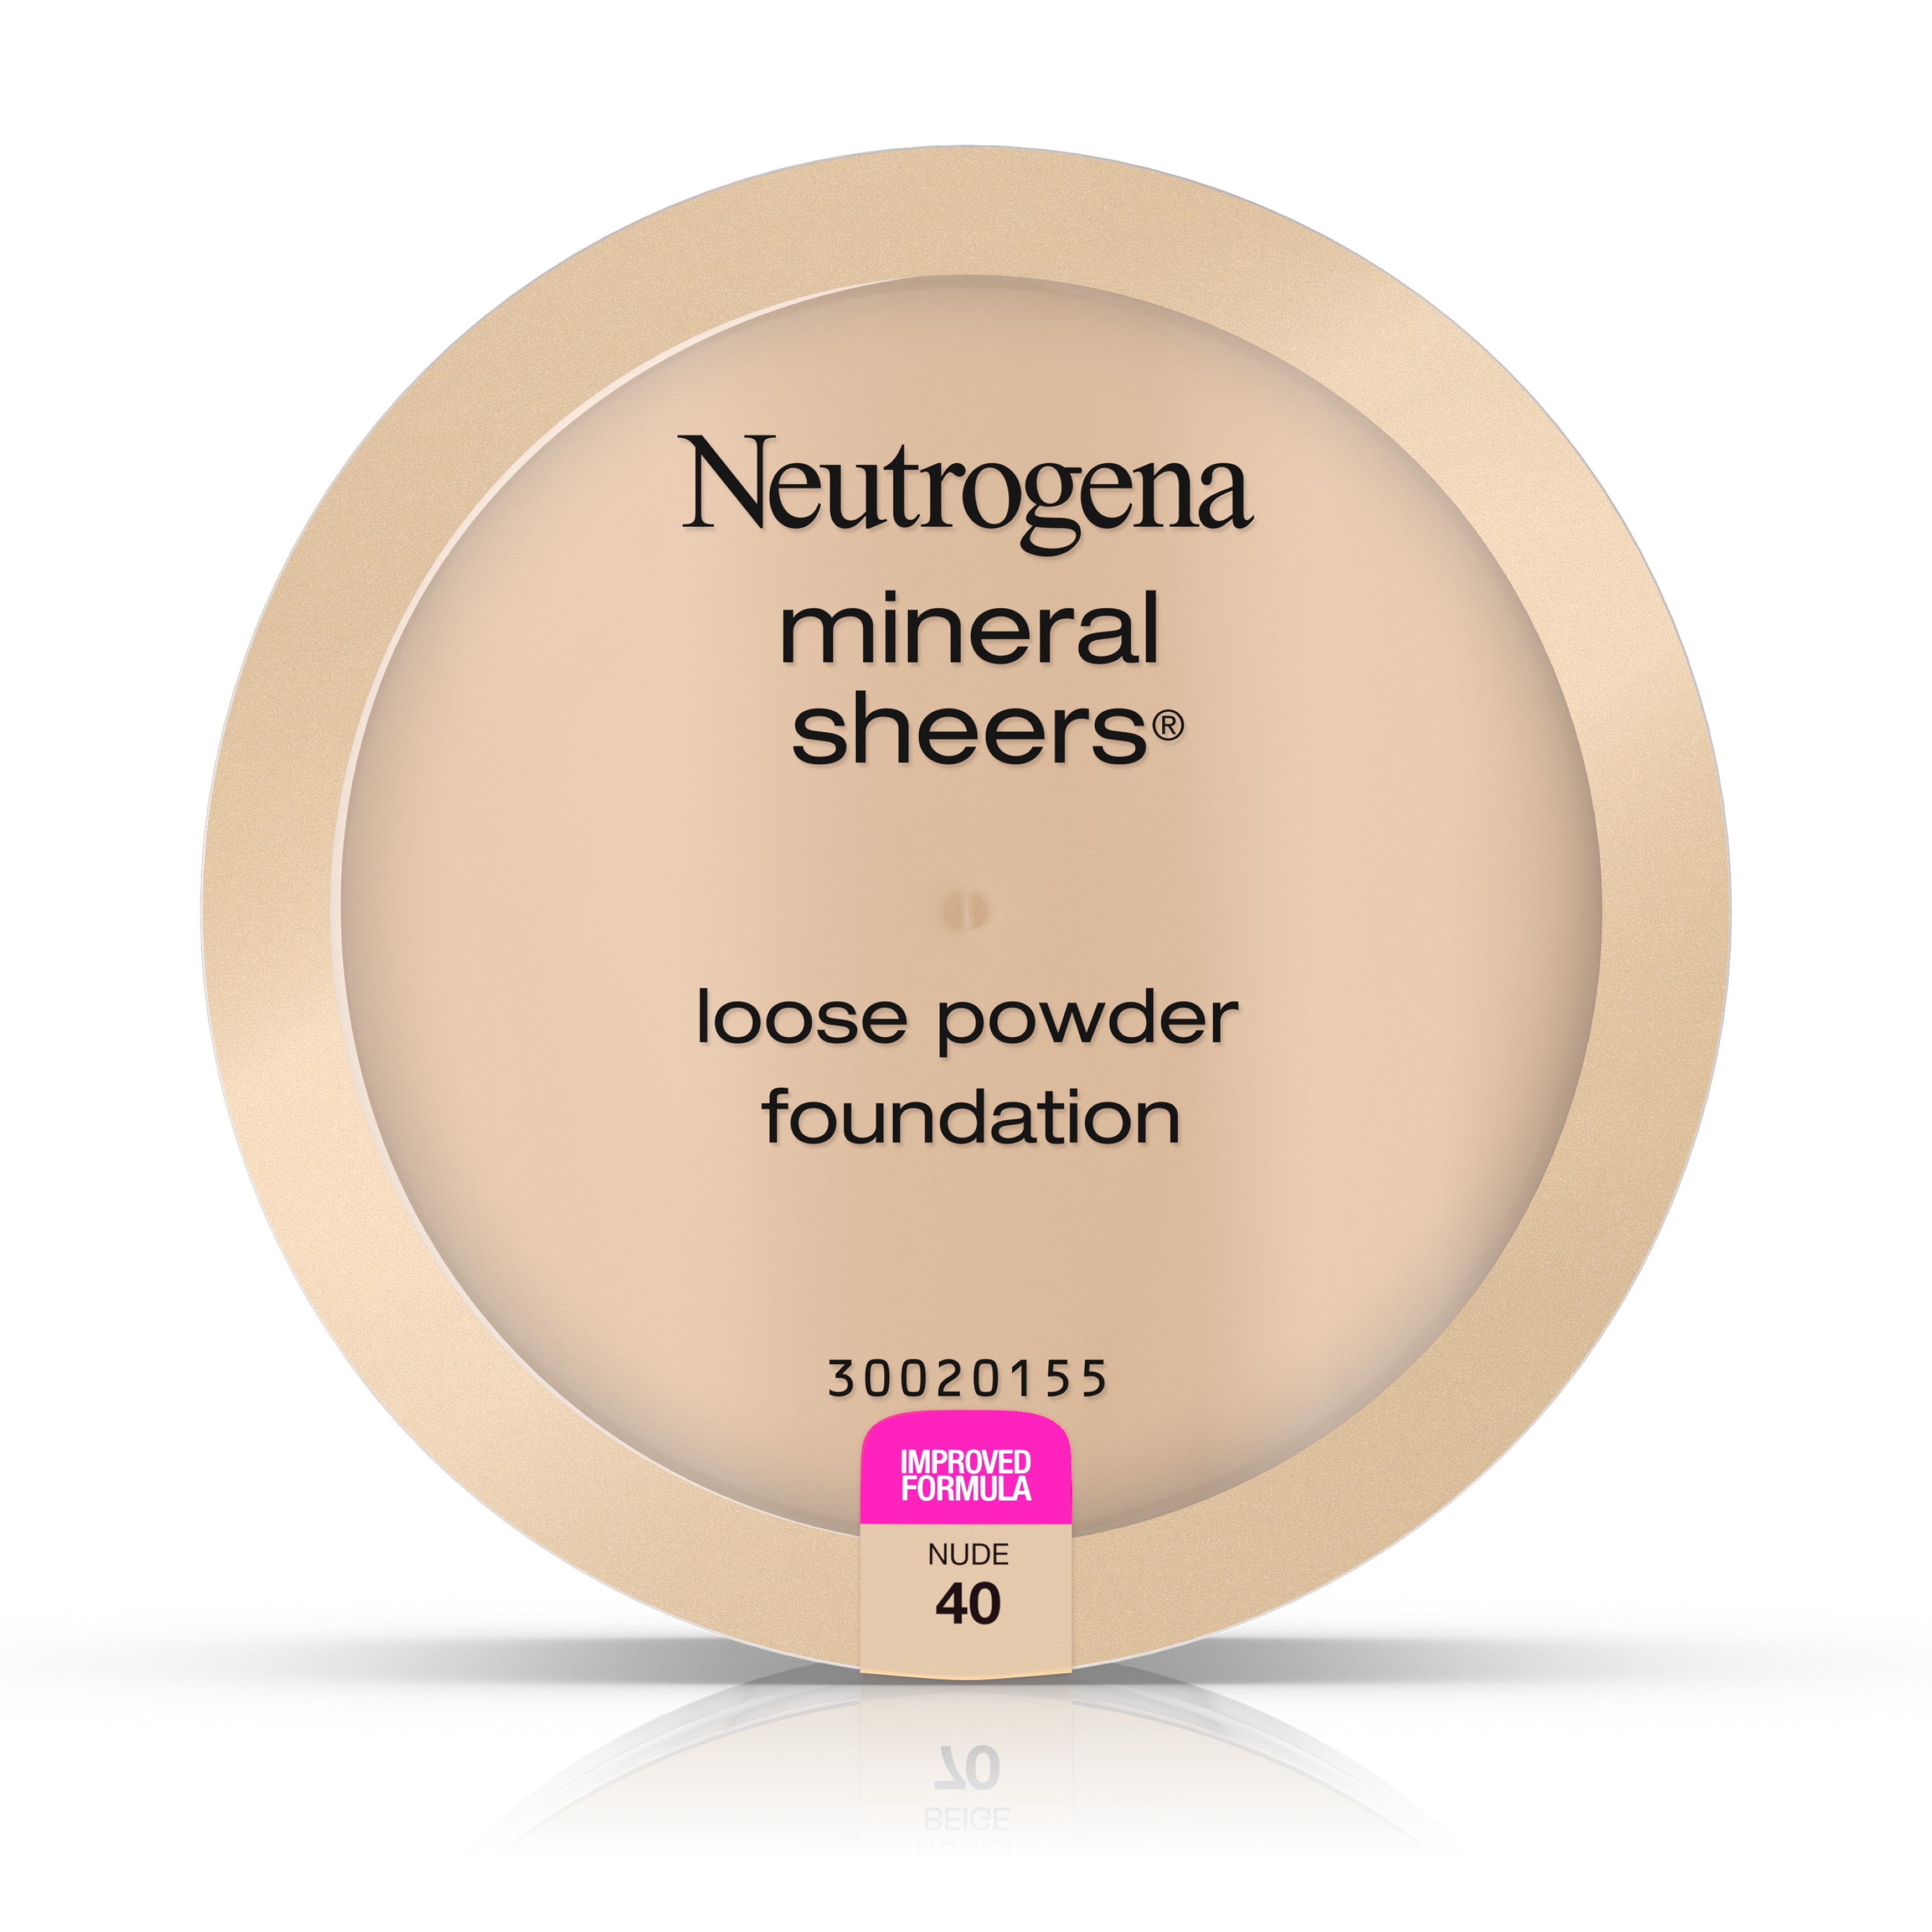 Neutrogena Mineral Sheers Loose Powder Foundation, Nude 40,.19 Oz.